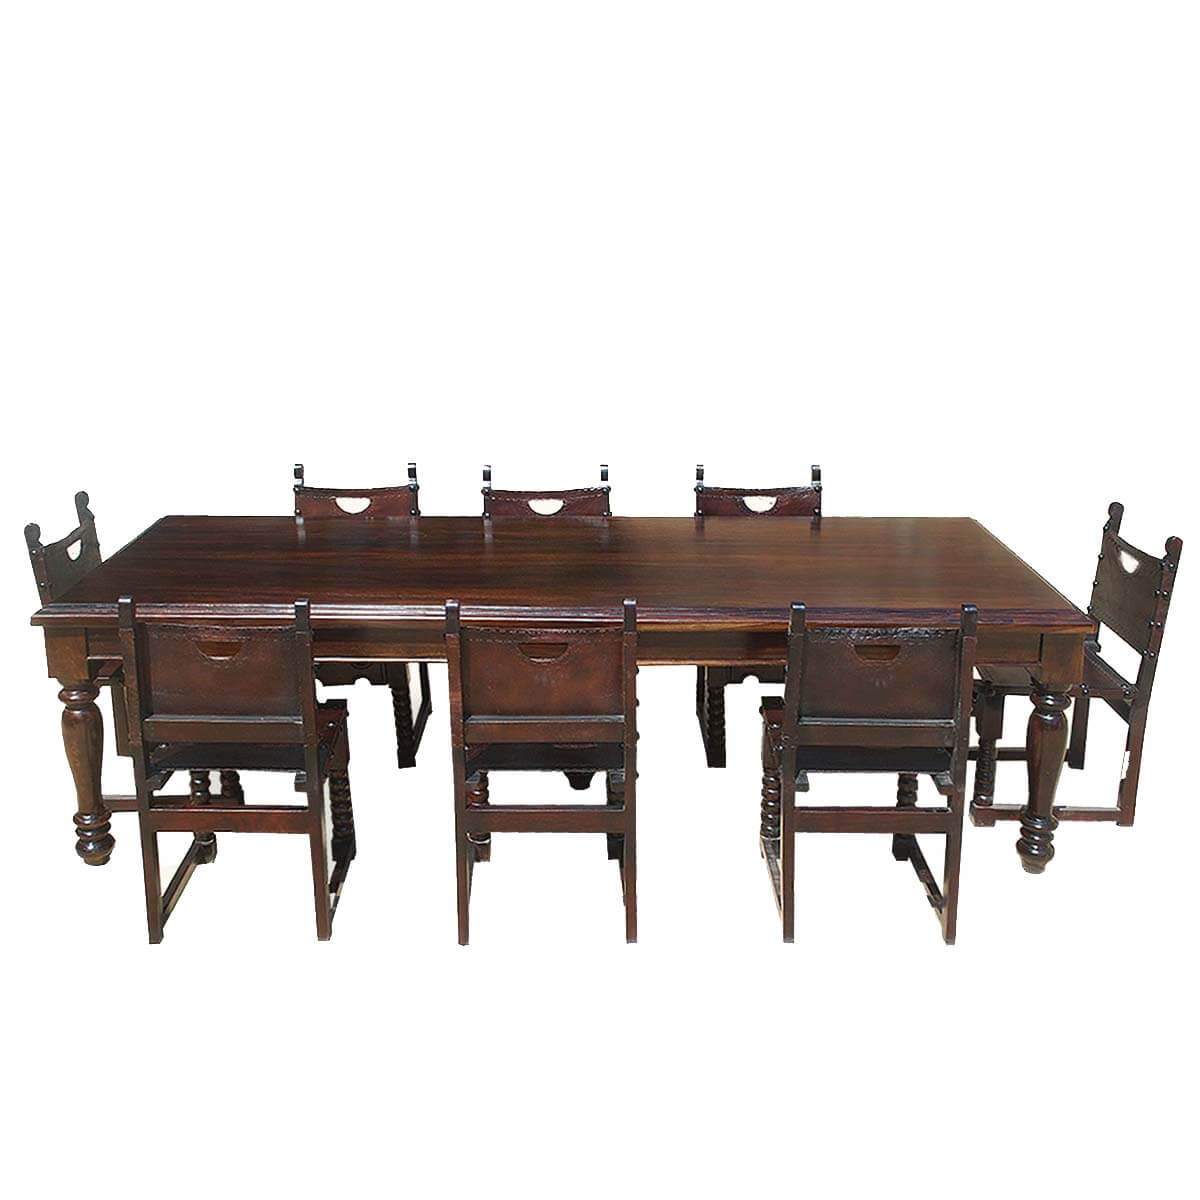 Large rustic solid wood dining room table w 8 leather for 8 dining room chairs